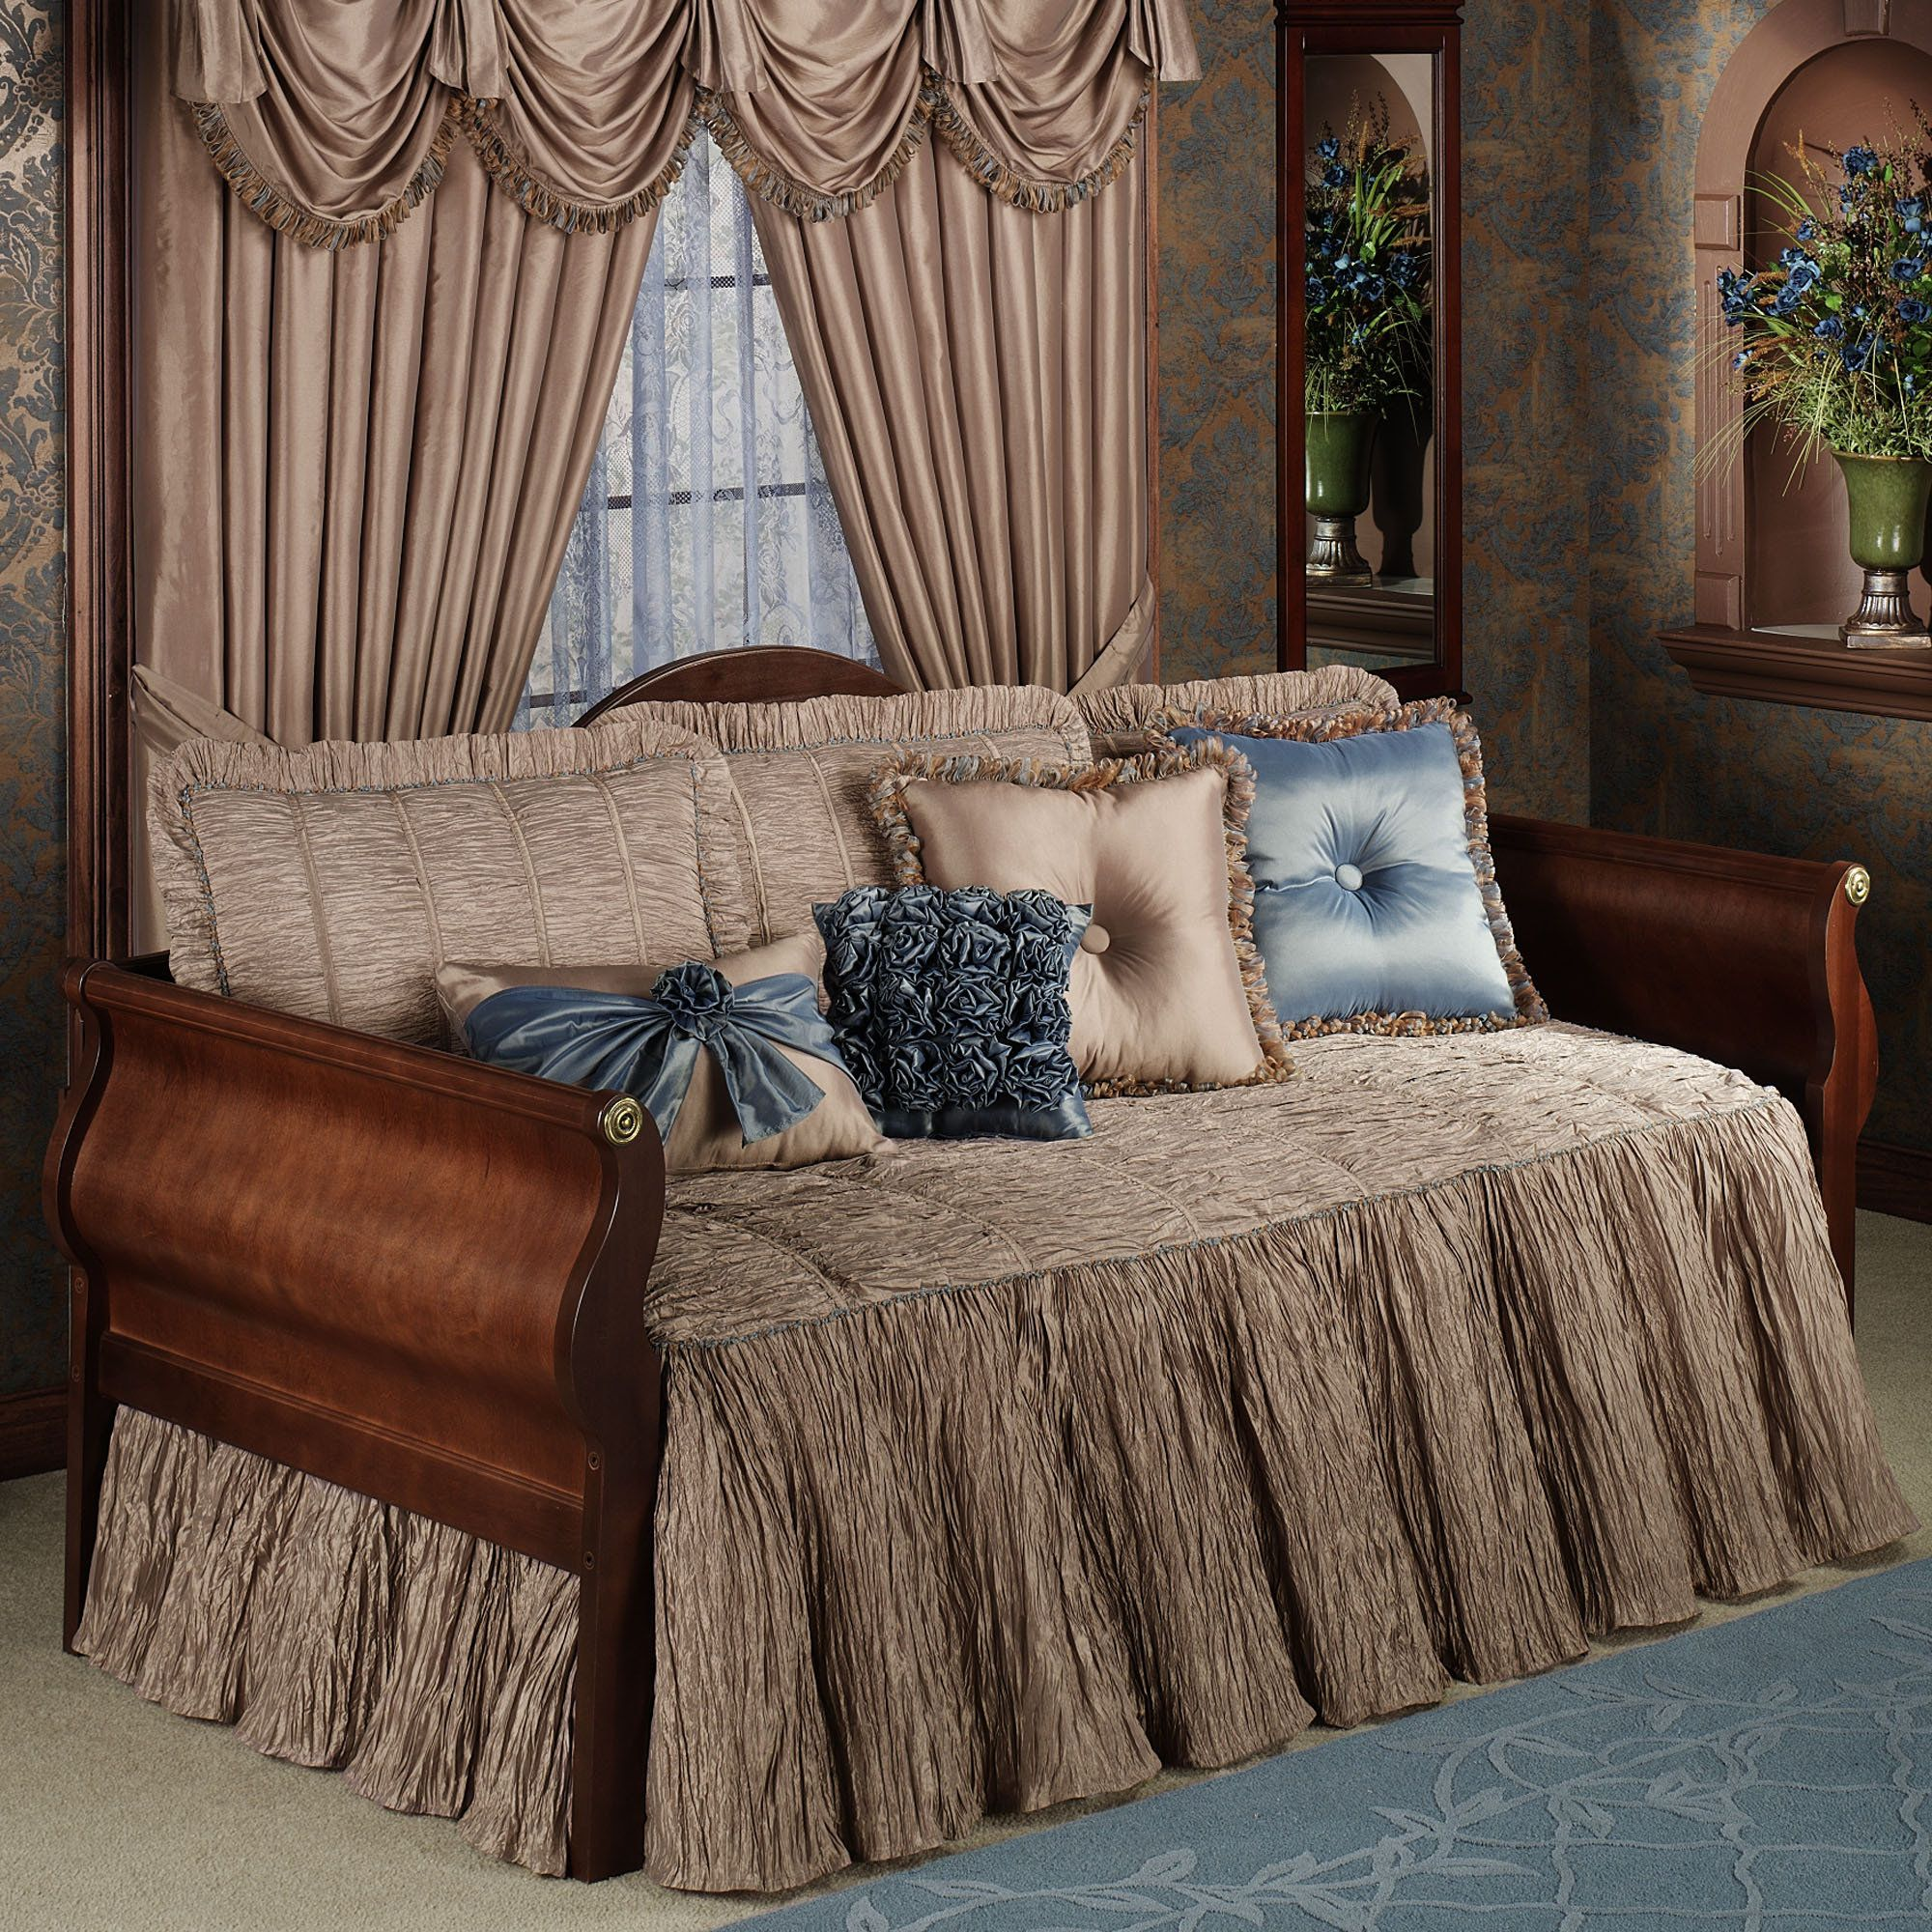 Royale daybed bedding daybed sets daybed and daybed bedding